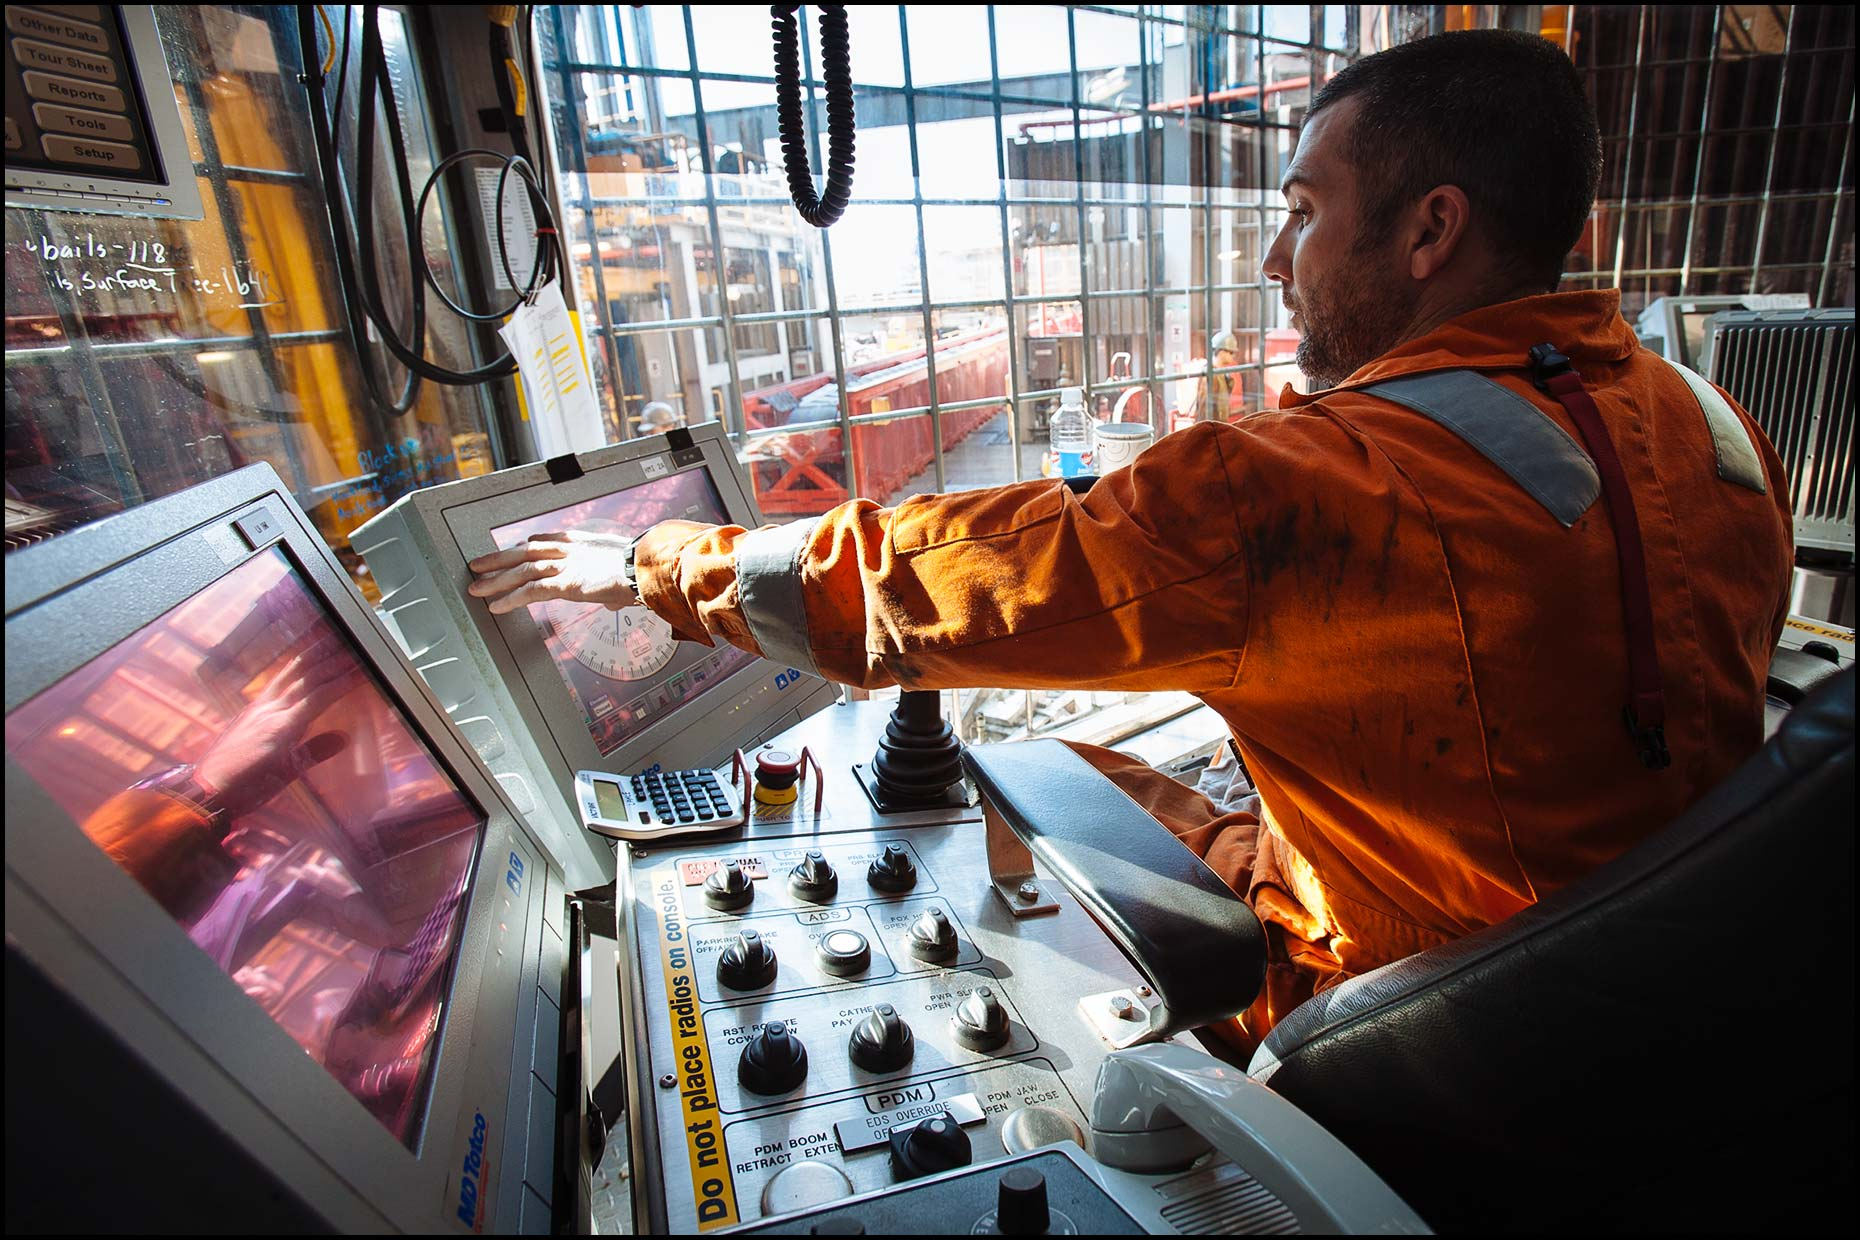 A driller operates drilling operations from inside the driller's shack (aka dog house).